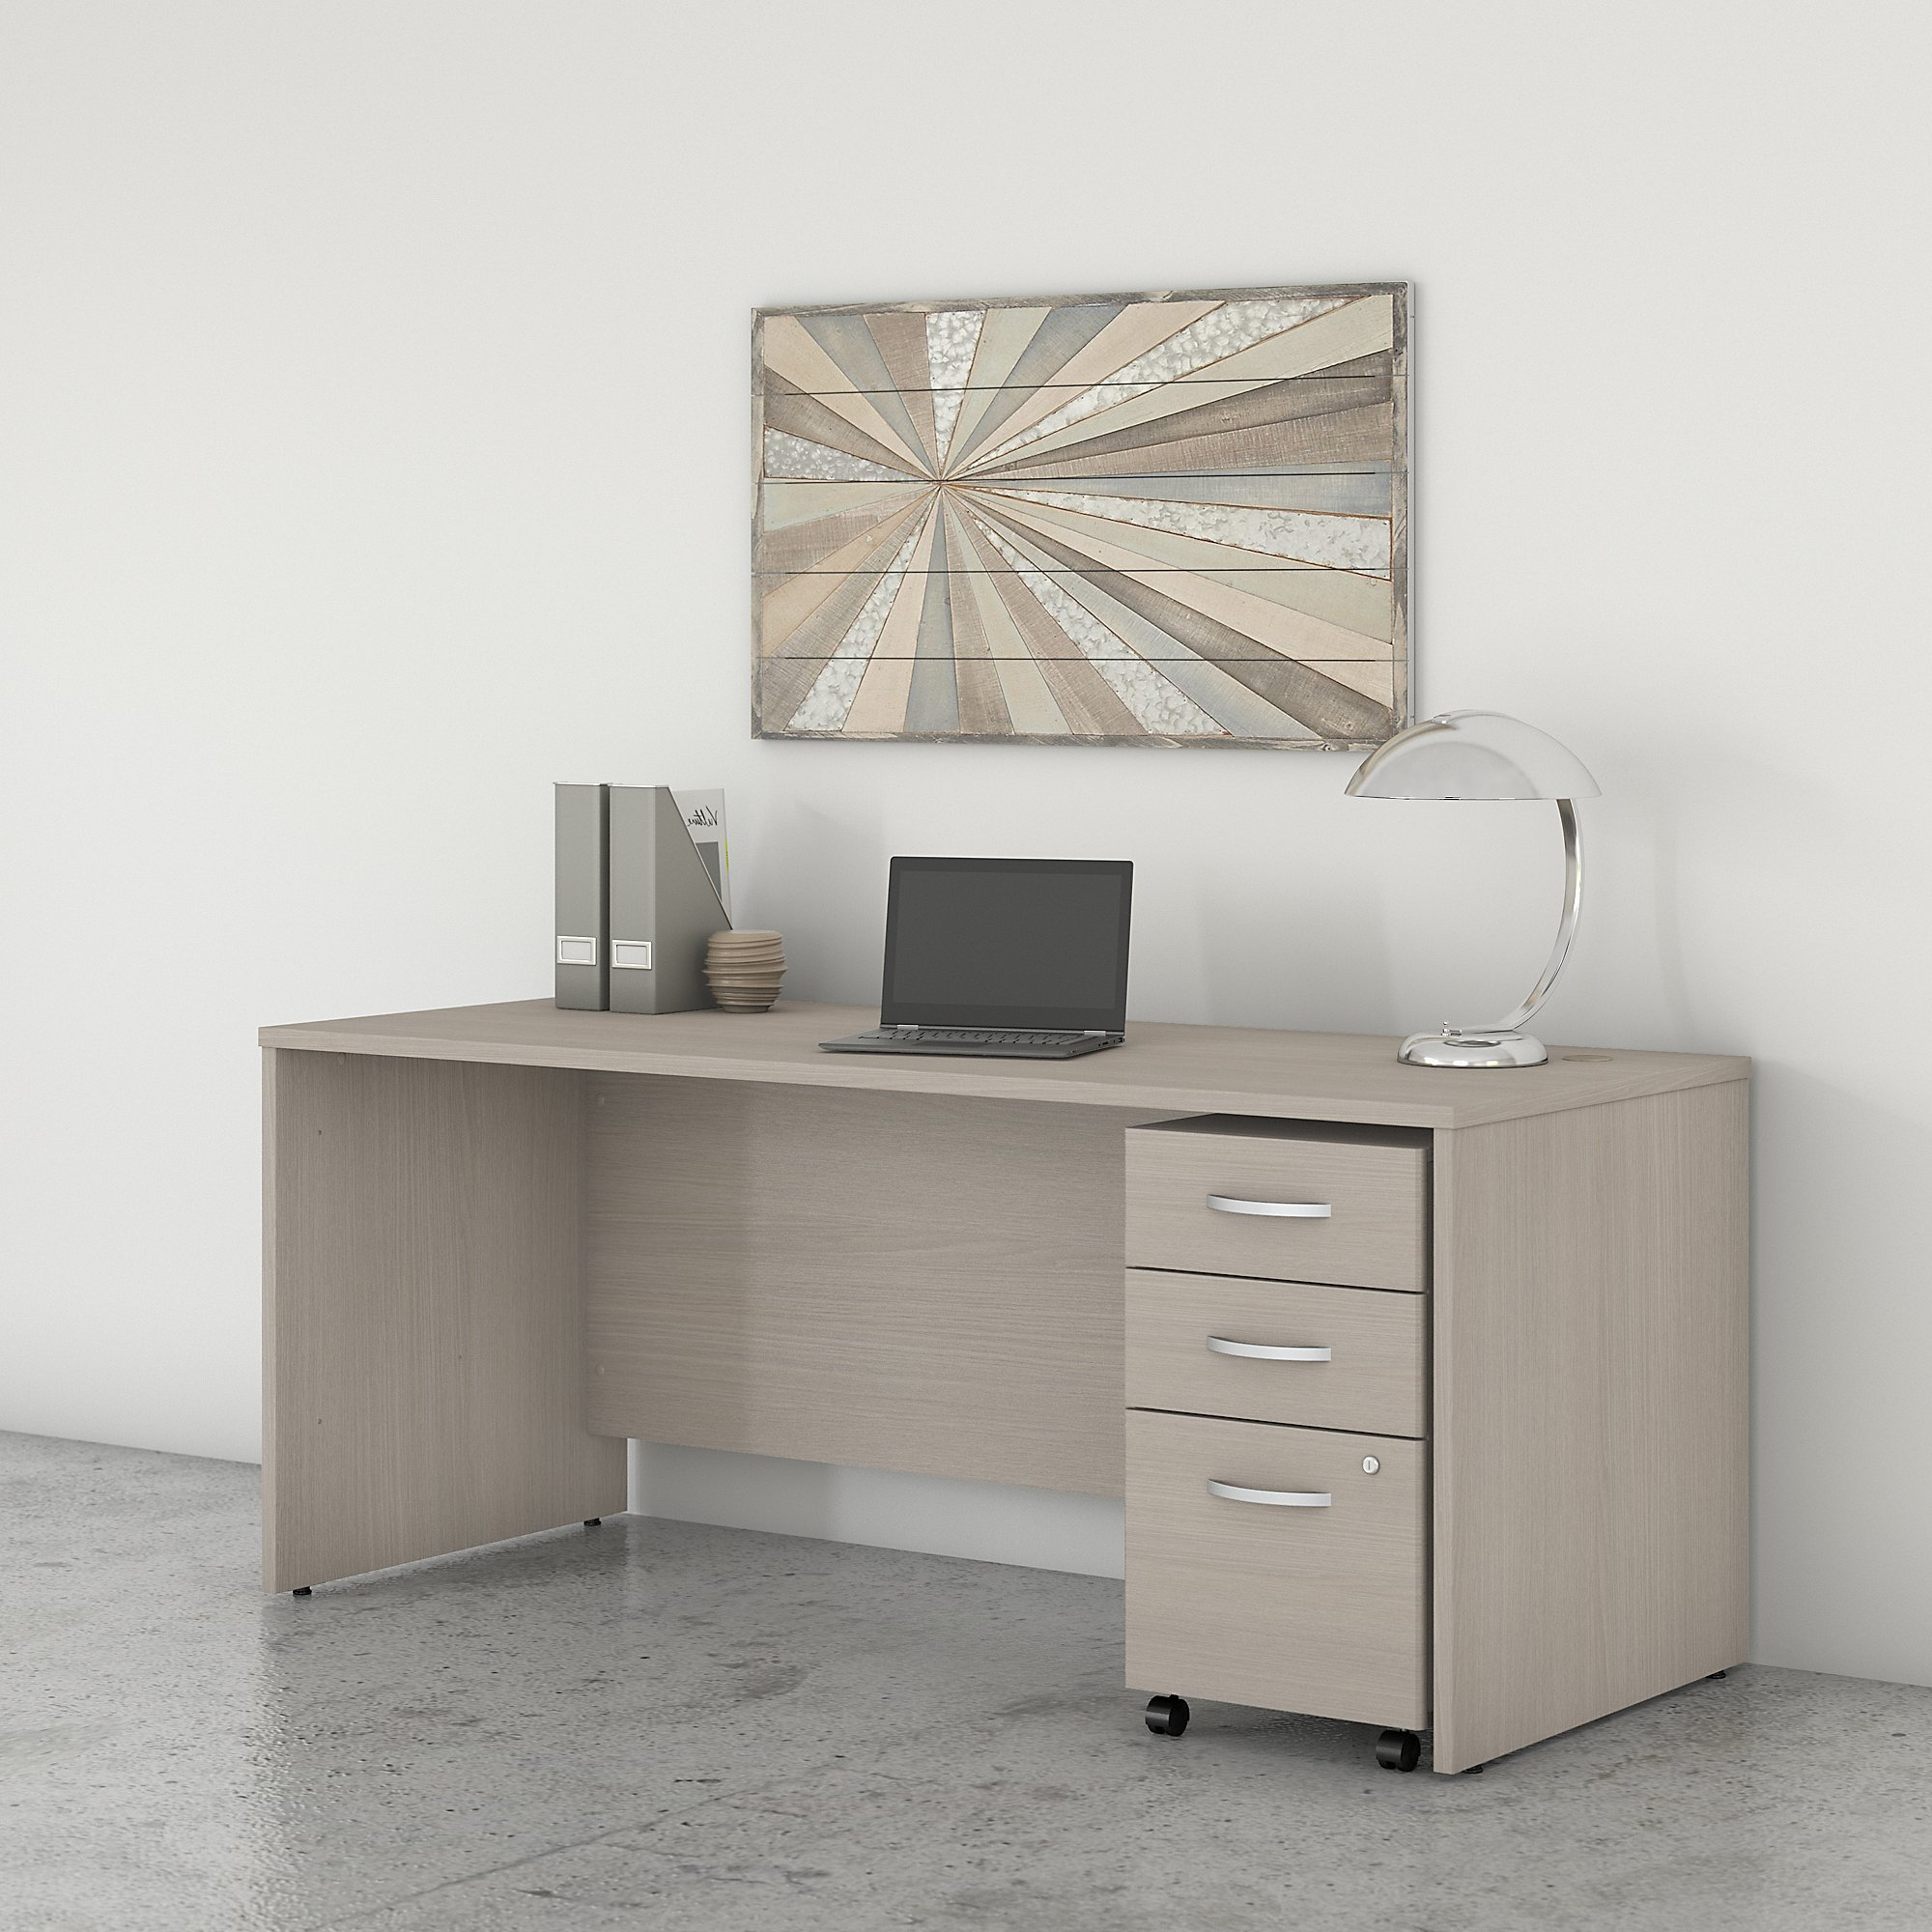 Bush Studio C 72W x 30D Office Desk with Mobile File Cabinet